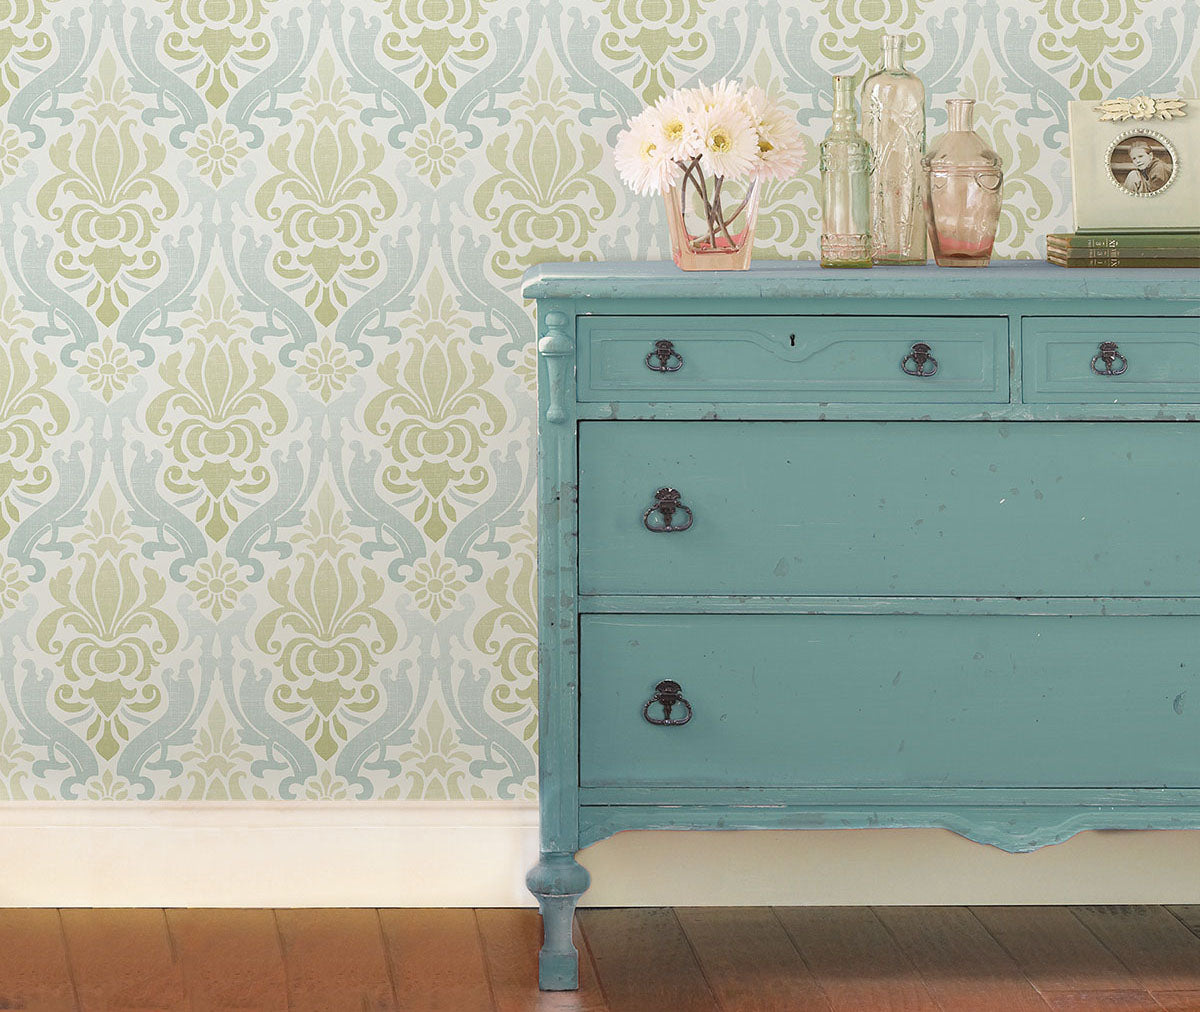 Varying array of blue and green ombre shading damask style wallpaper from Barrydowne Paint.